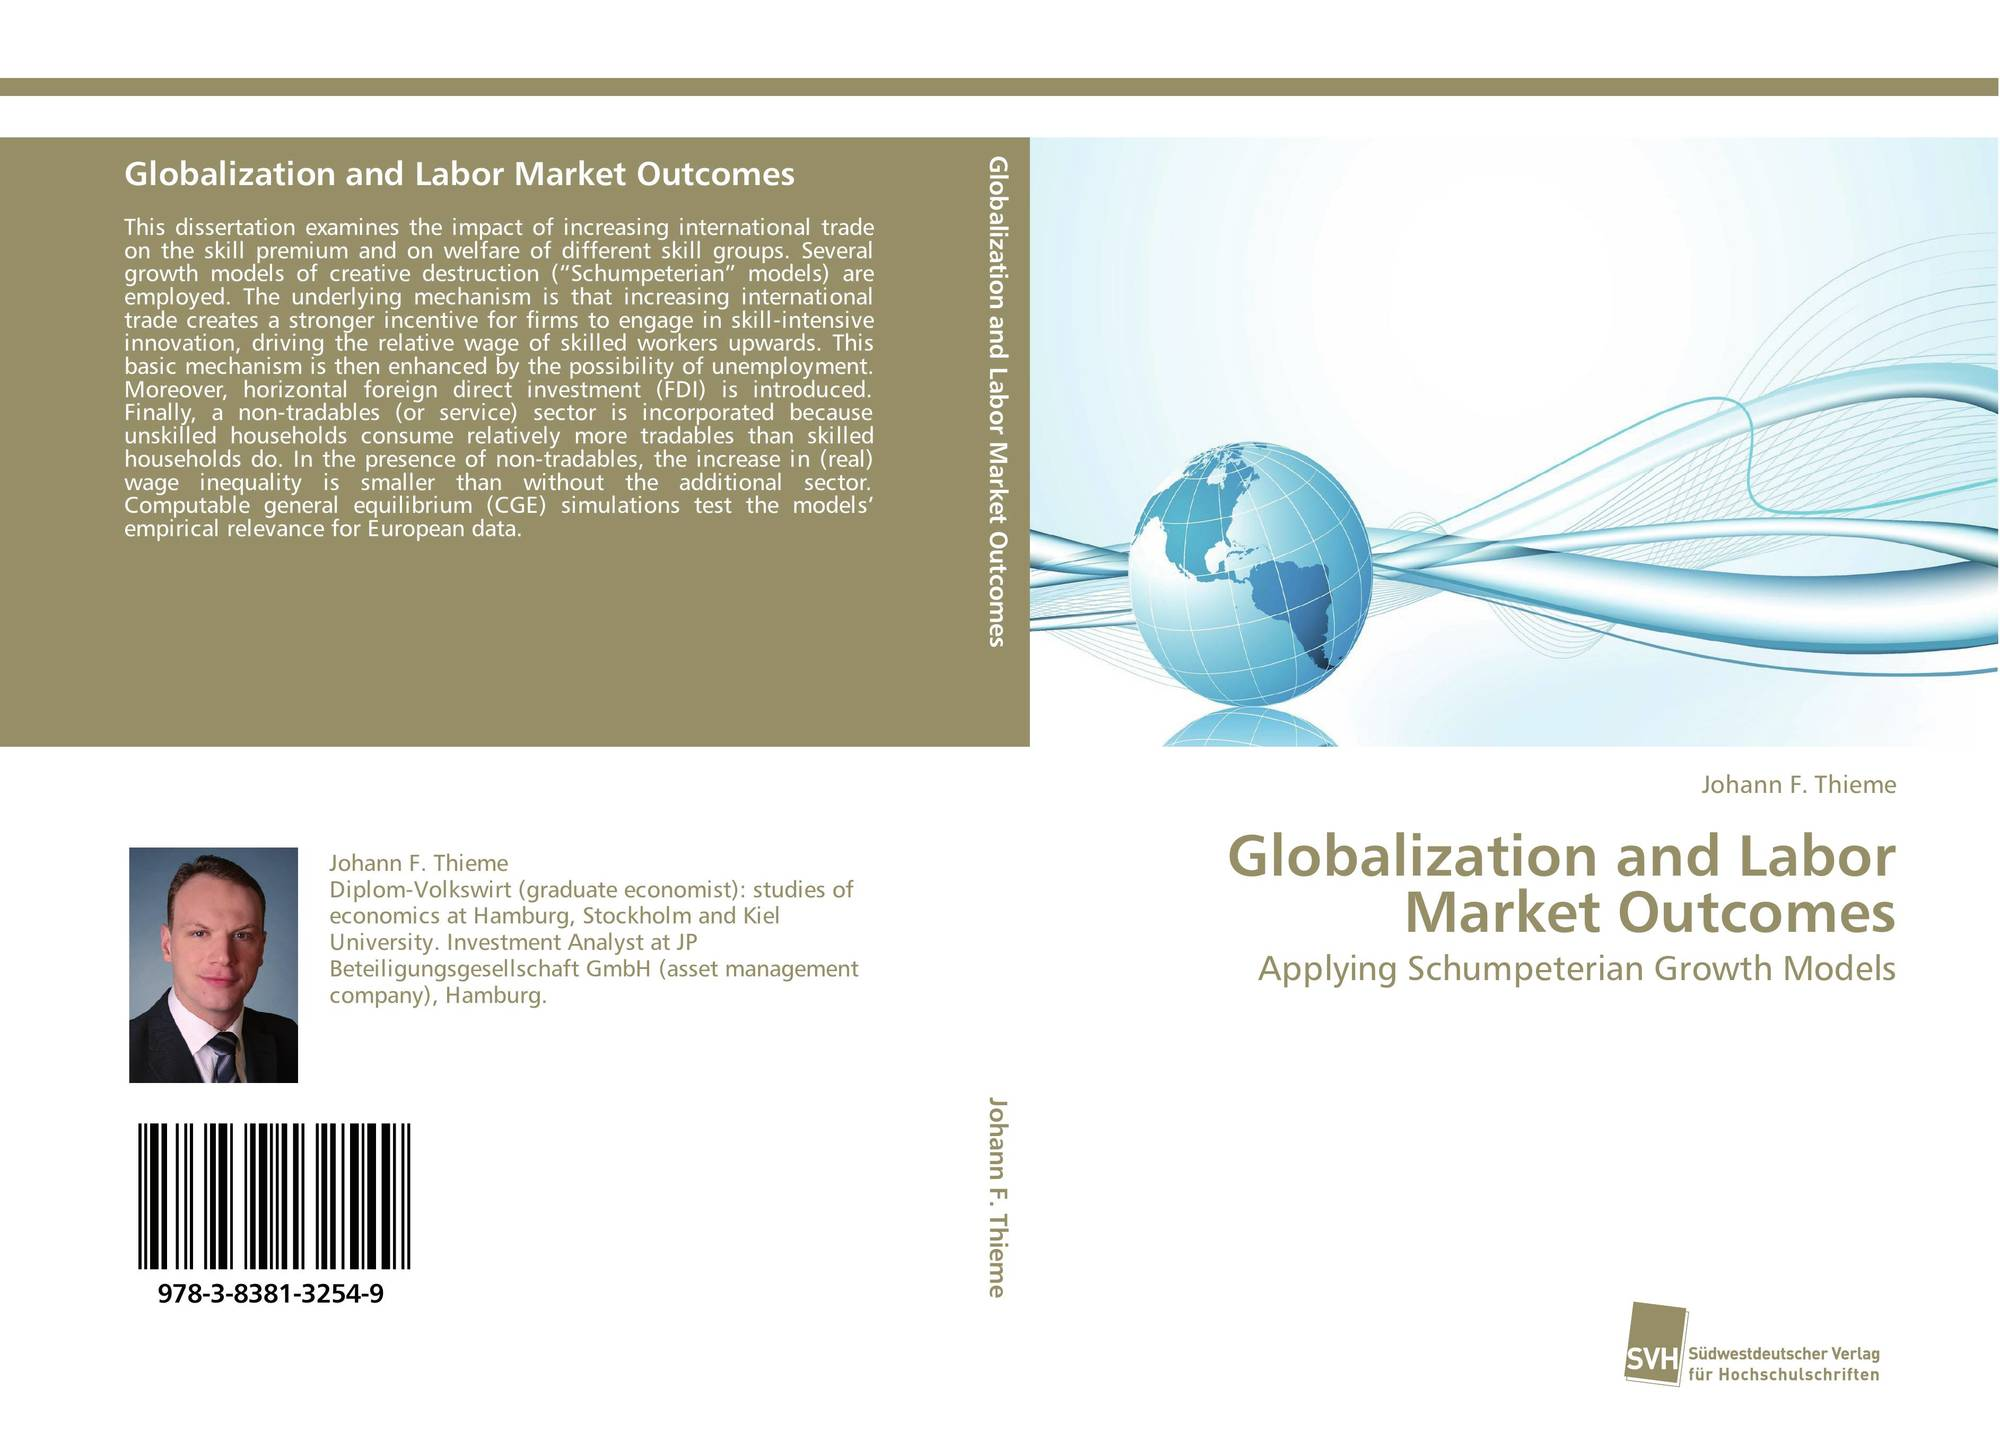 globalization and its impact on marketing Discover how globalization impacts governments and investors both in positive and negative ways, as well as some overall trends to consider below is a look beyond the everyday implications of globalization and towards the economic implications that impact international investors.